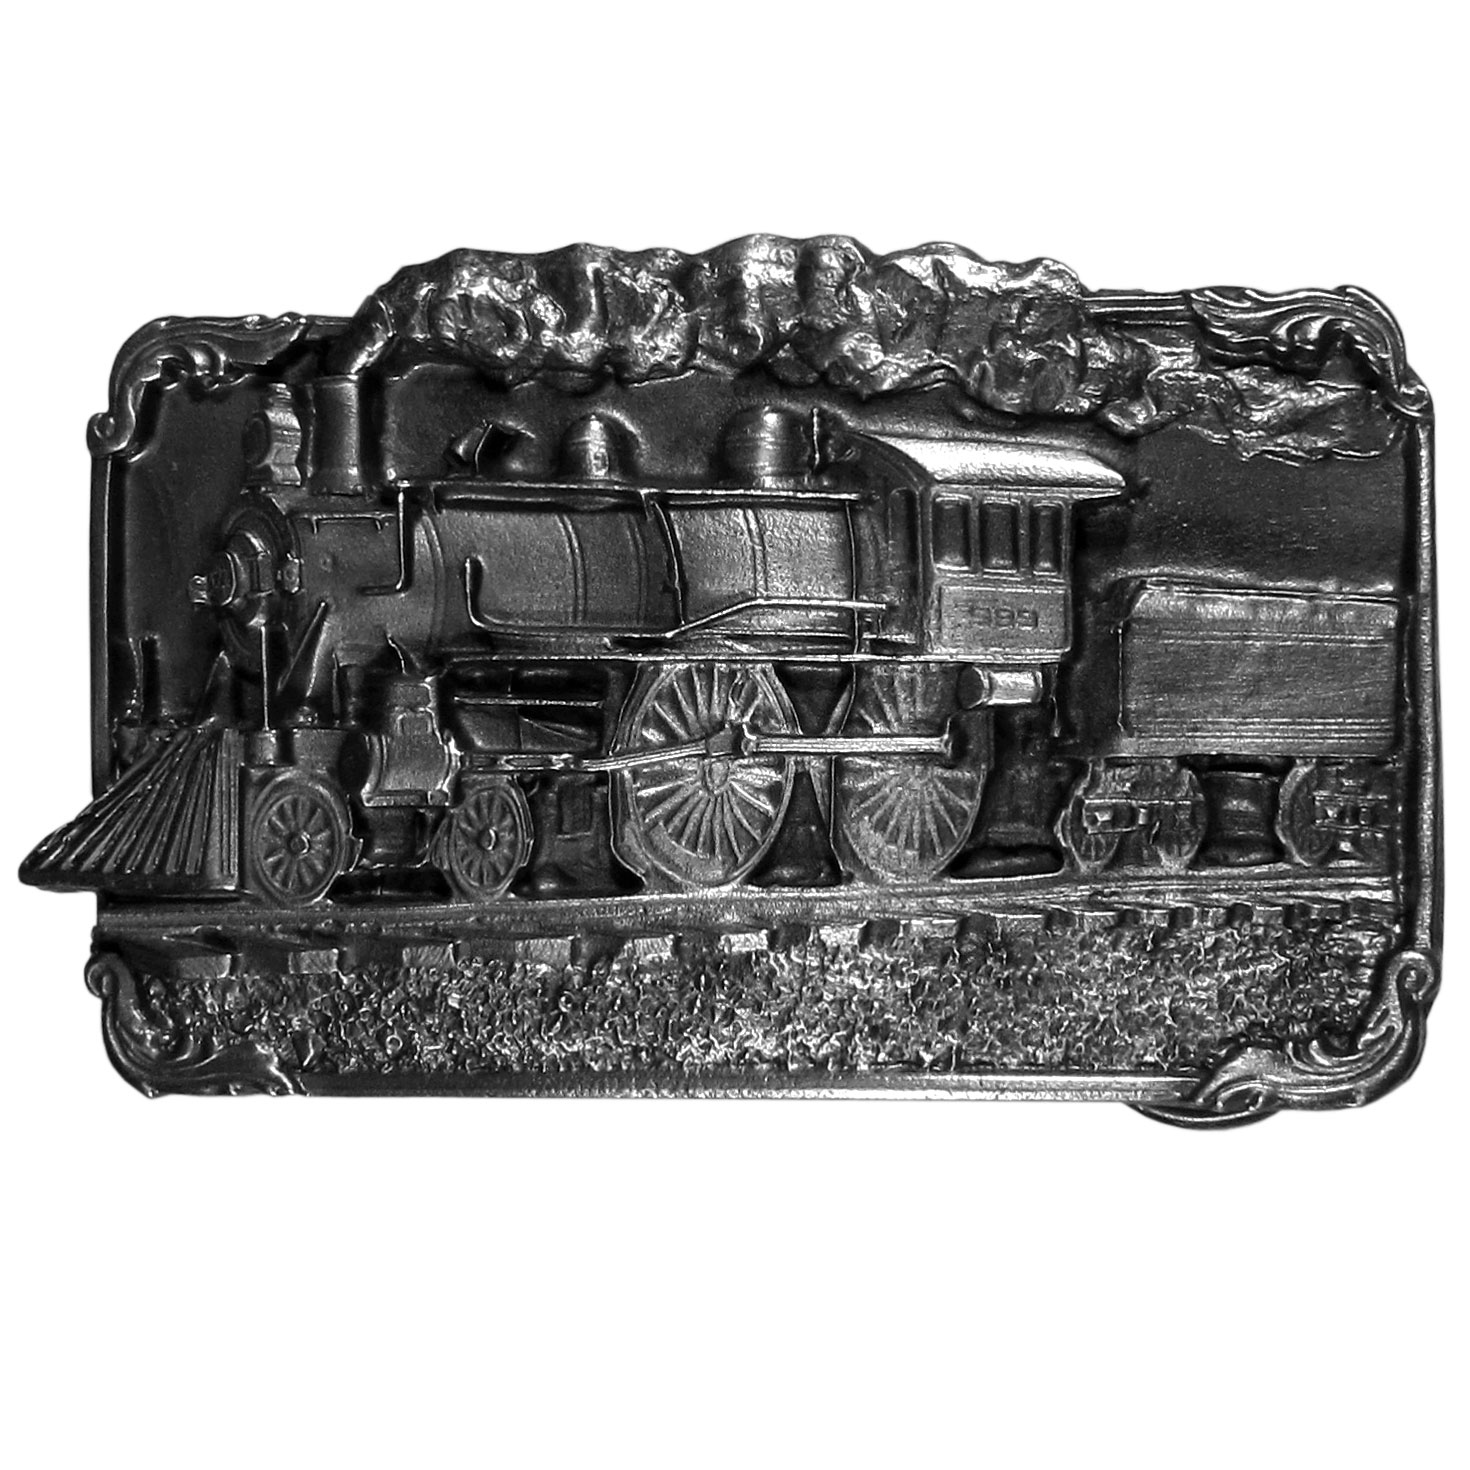 "Train Antiqued Belt Buckle - ""This beautifully carved belt buckle features the locomotive.  Across the front is a railroad car with steam coming out of it on a train track.  On the back are the words, """"The growth and greatness of the United States and Canada is due in large part to the important historic role of the railroads.  This spirit lives on today.""""  This exquisitely carved buckle is made of fully cast metal with a standard bale that fits up to 2"""" belts."""